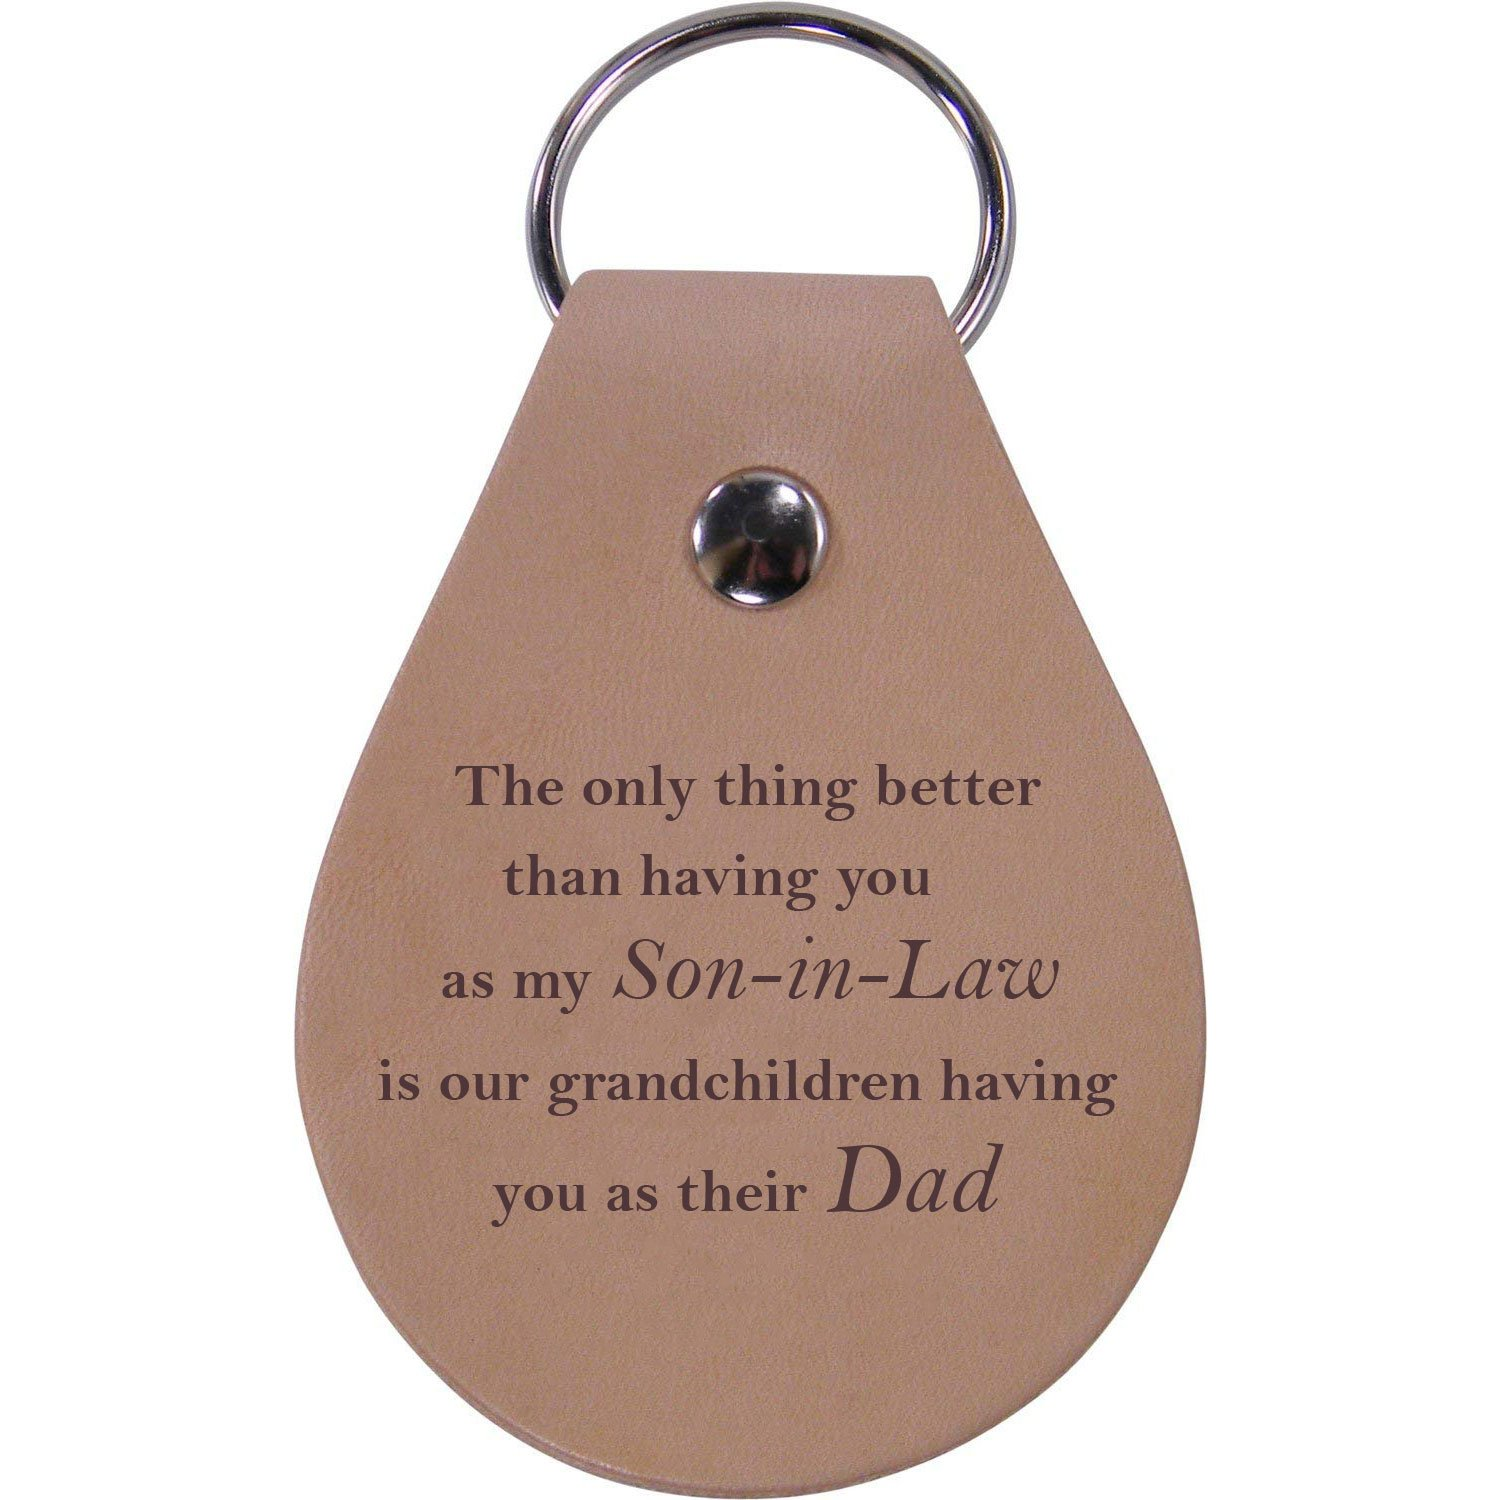 Leather Key Chain CustomGiftsNow T only Thing Better Than Having You as My Son-in-Law is Our Grandchildren Having You as Their Dad